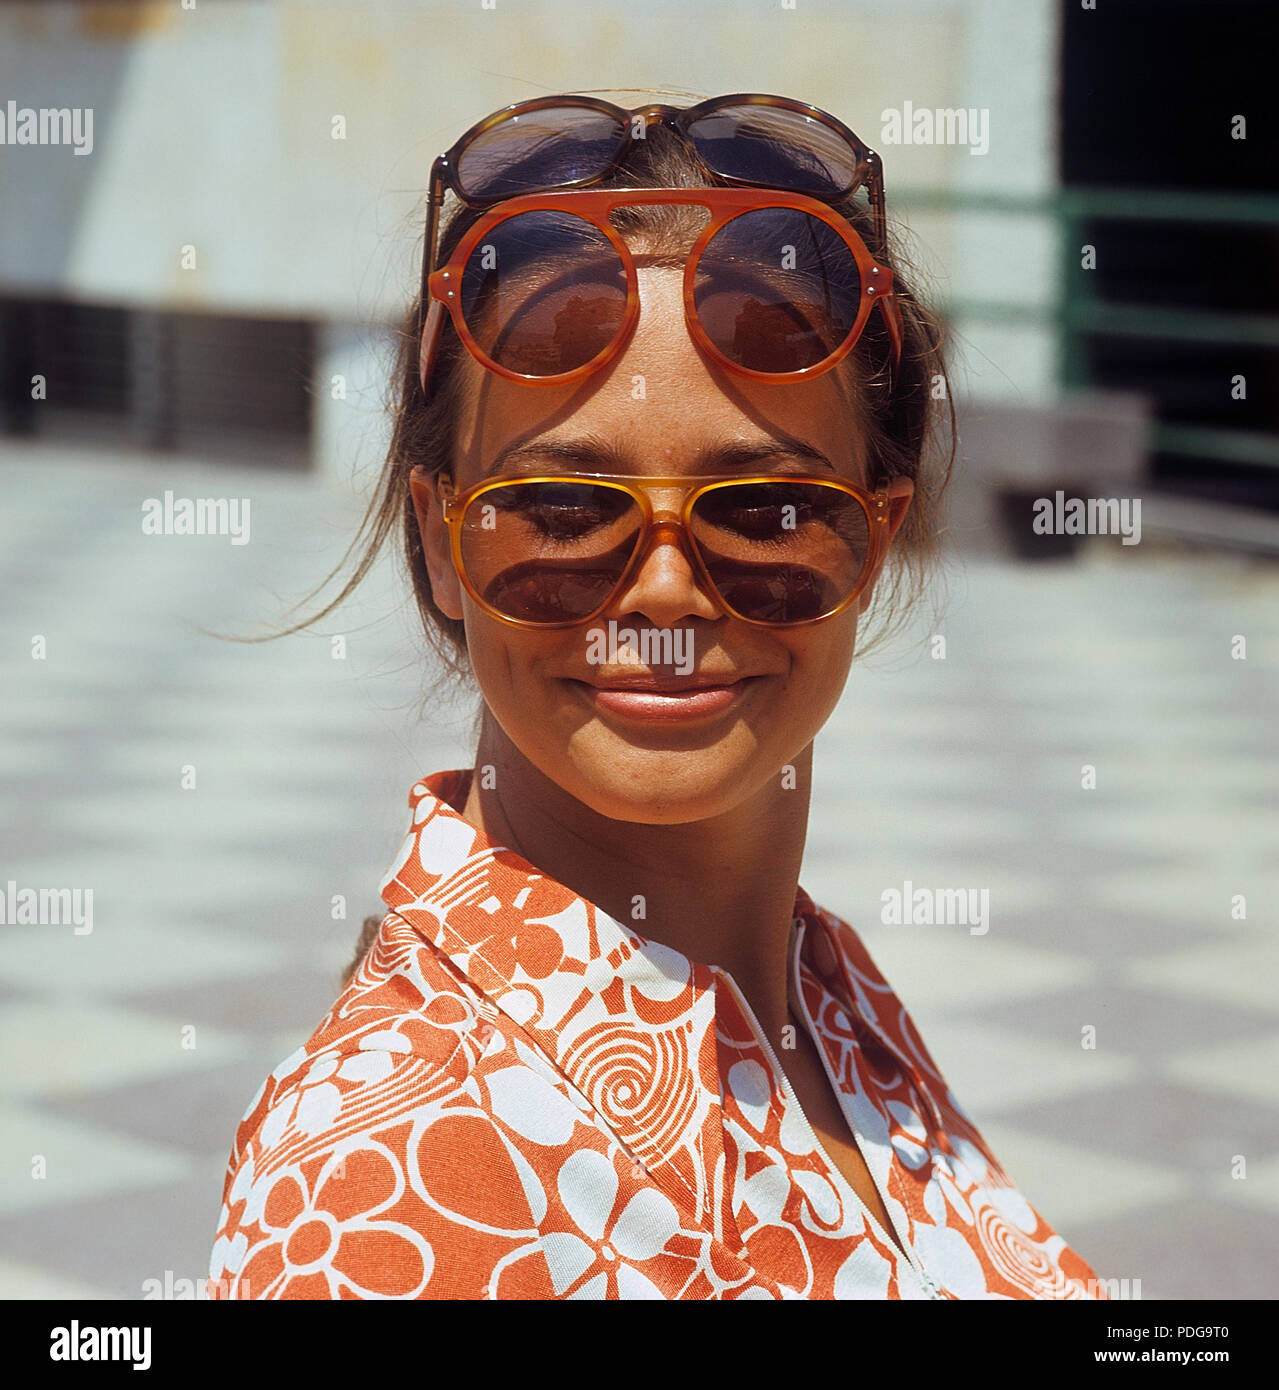 1960s glasses. Summer of 69. The young female fashion model is wearing this years models of sunglasses and accessories. 1969 ref CV25-12 - Stock Image